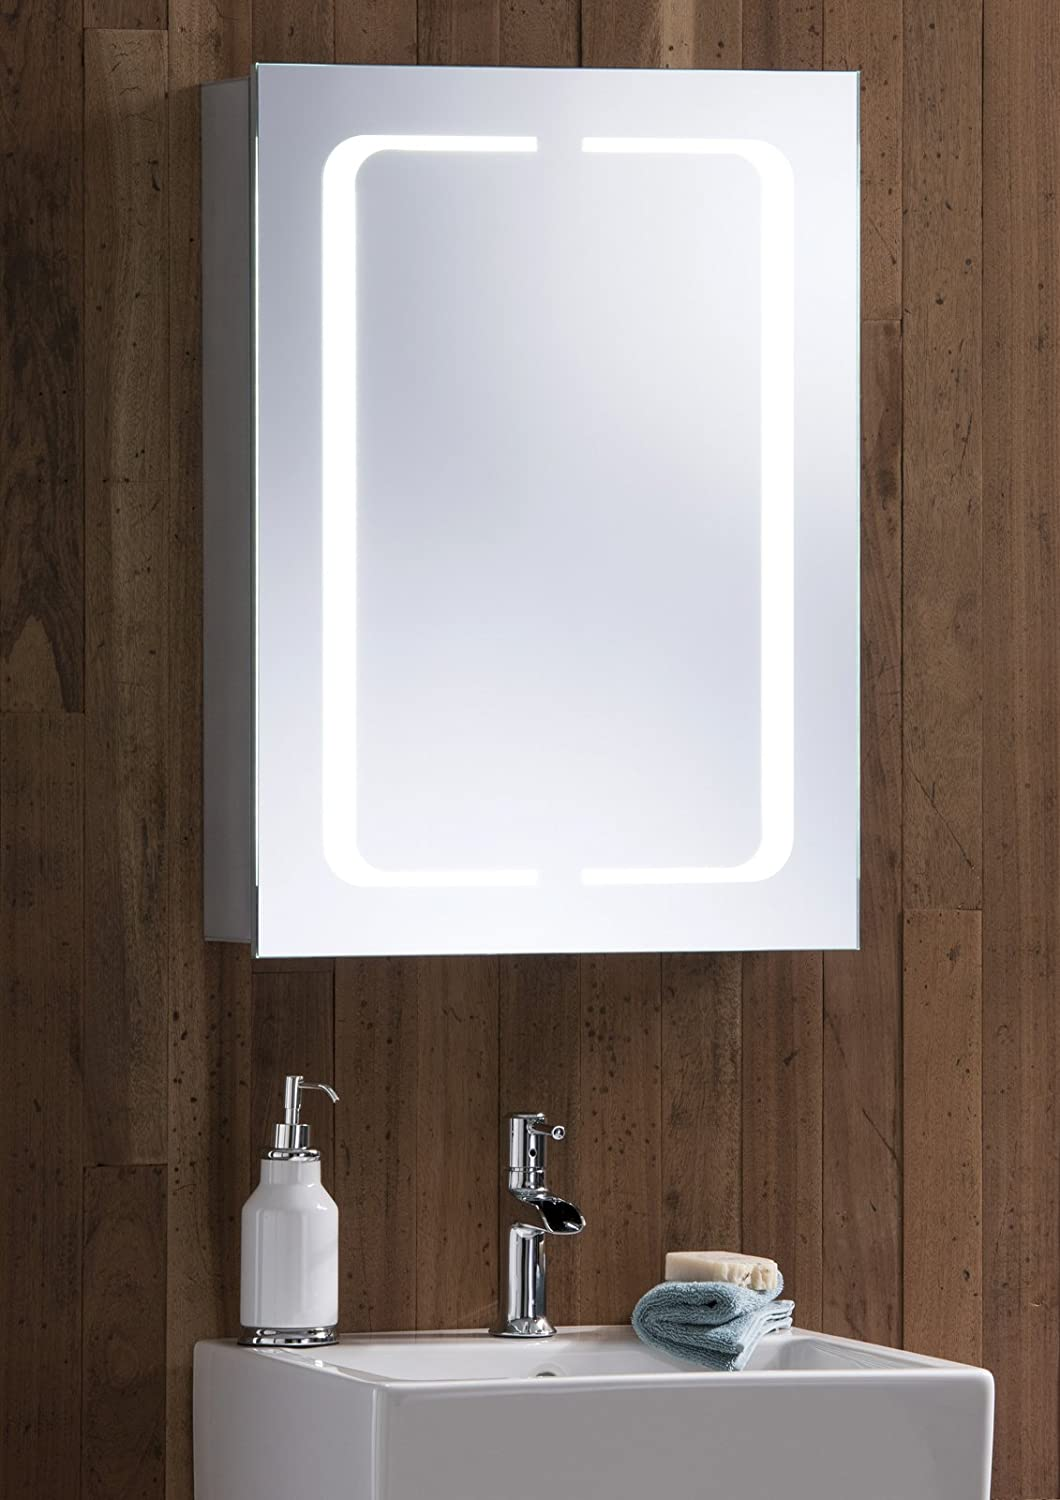 LED Illuminated Bathroom Mirror Cabinet With Demister Heat Pad Shaver And Sensor Switch Lights 70cmH X 50cmW 15cmD